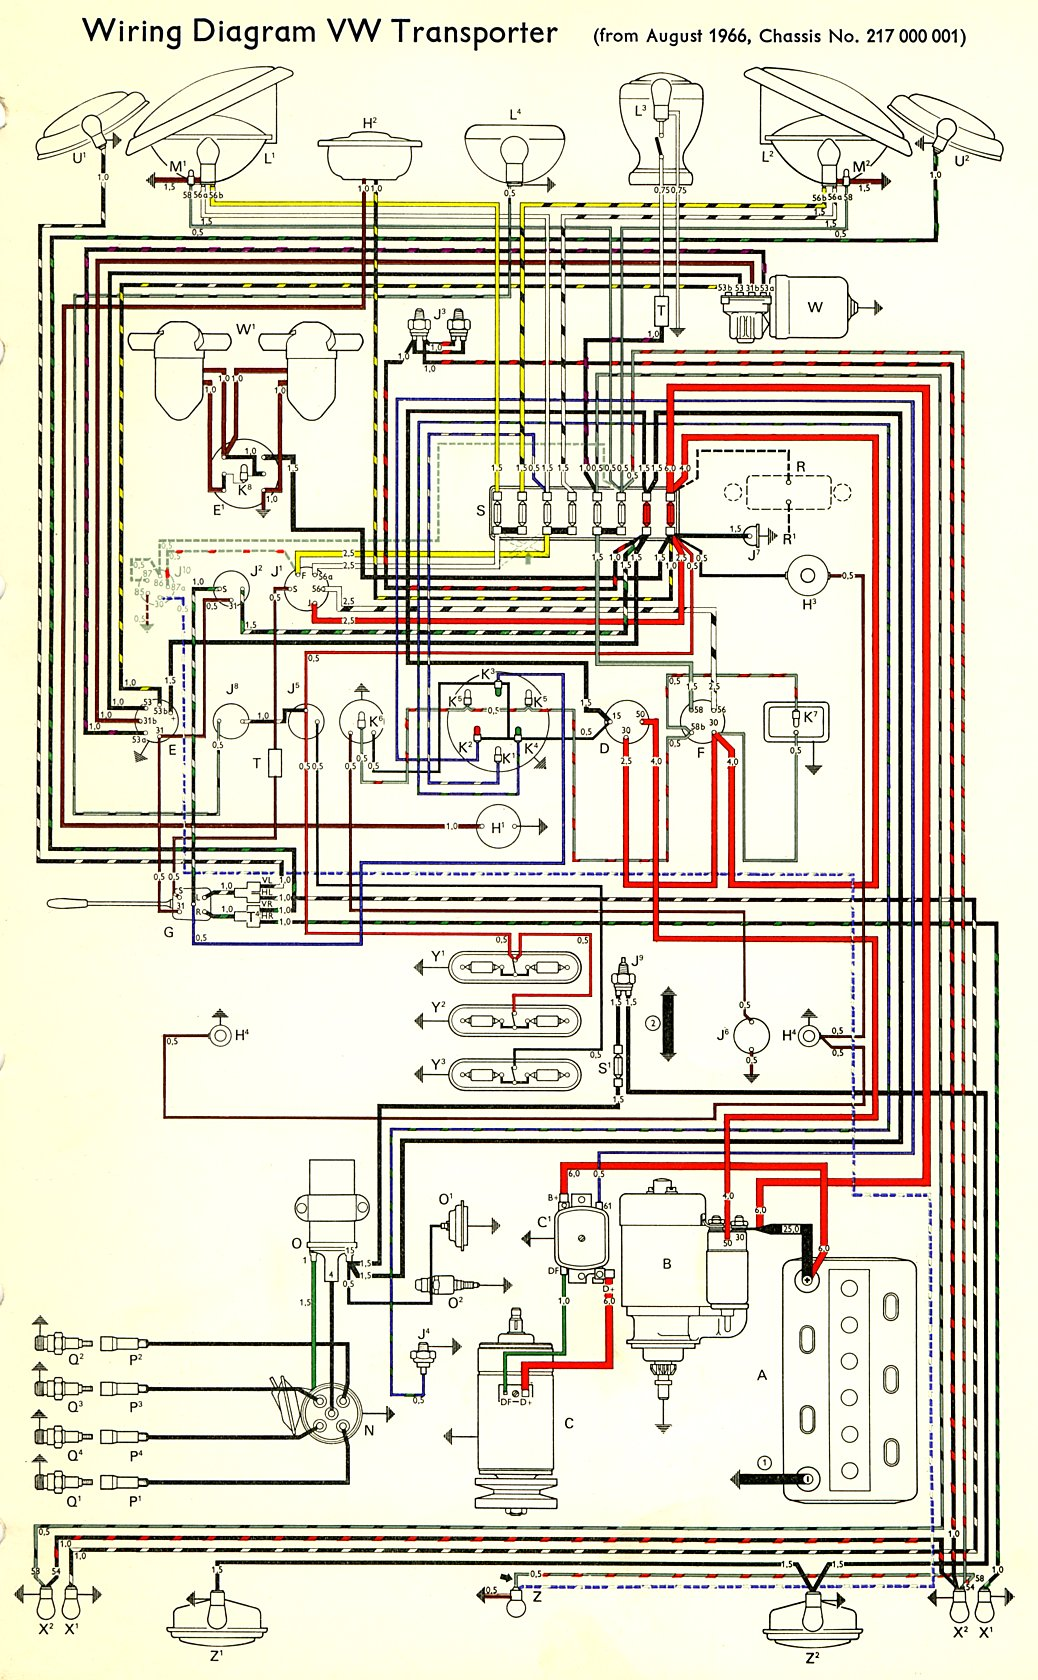 bus_67 1967 bus wiring diagram thegoldenbug com vw bus wiring diagram at edmiracle.co